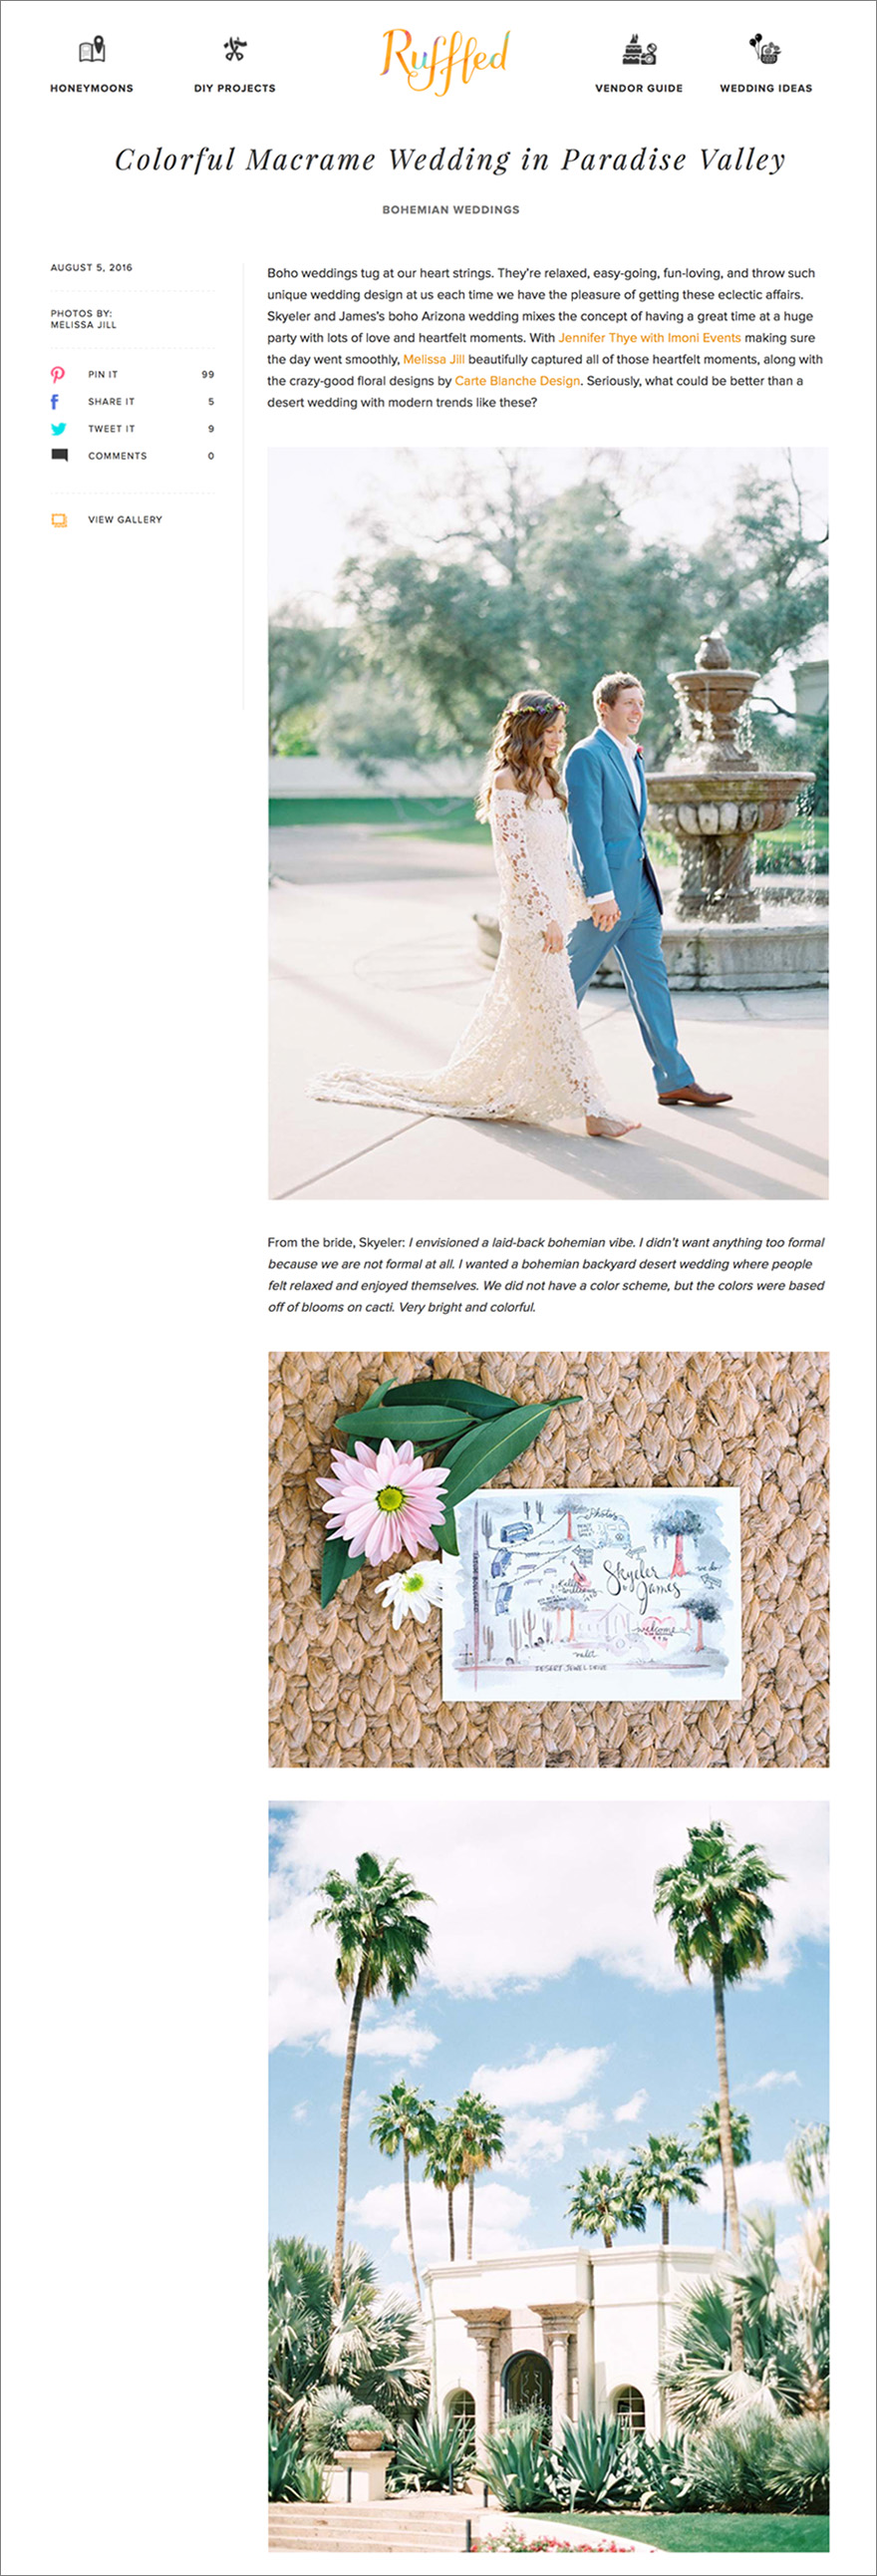 Bohemian wedding photographed by Melissa Jill featured on Ruffled Blog